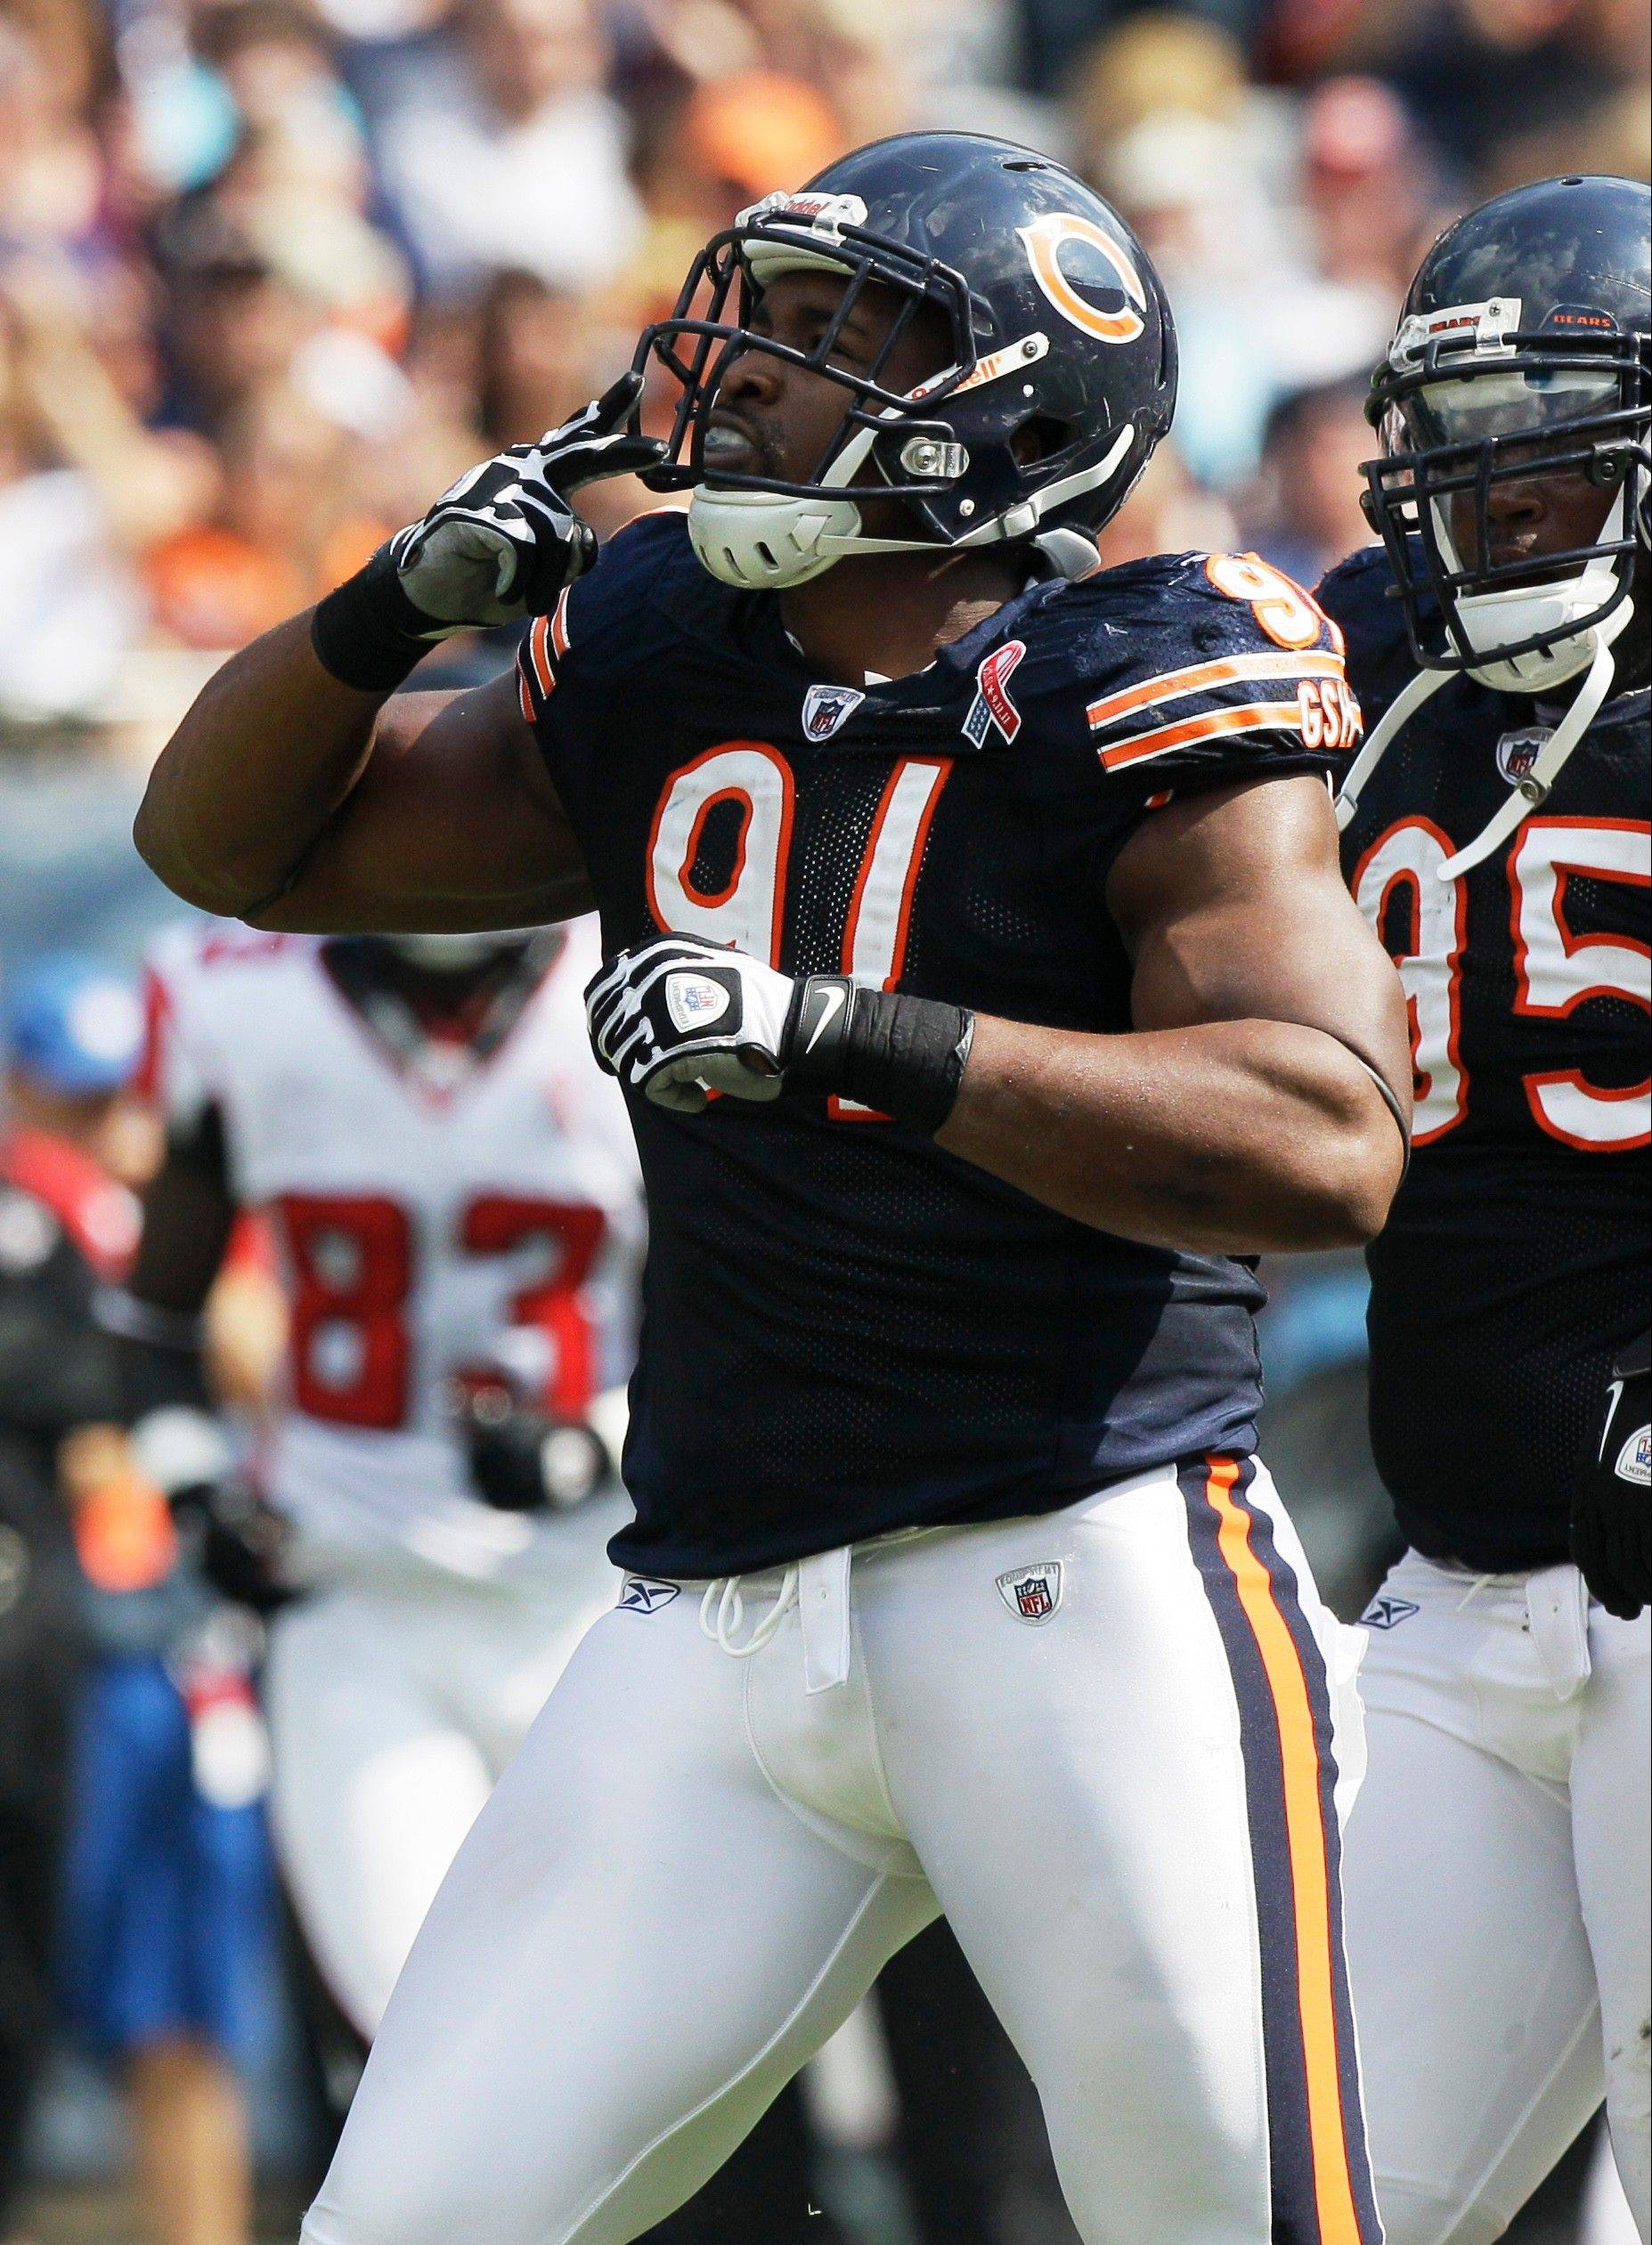 Defensive tackle Amobi Okoye saw action in all 16 games for the Bears in 2011 before signing with Tampa Bay as an unrestricted free agent in the off-season. But the Bucs waived Okoye last week, and the Bears signed him Sunday.